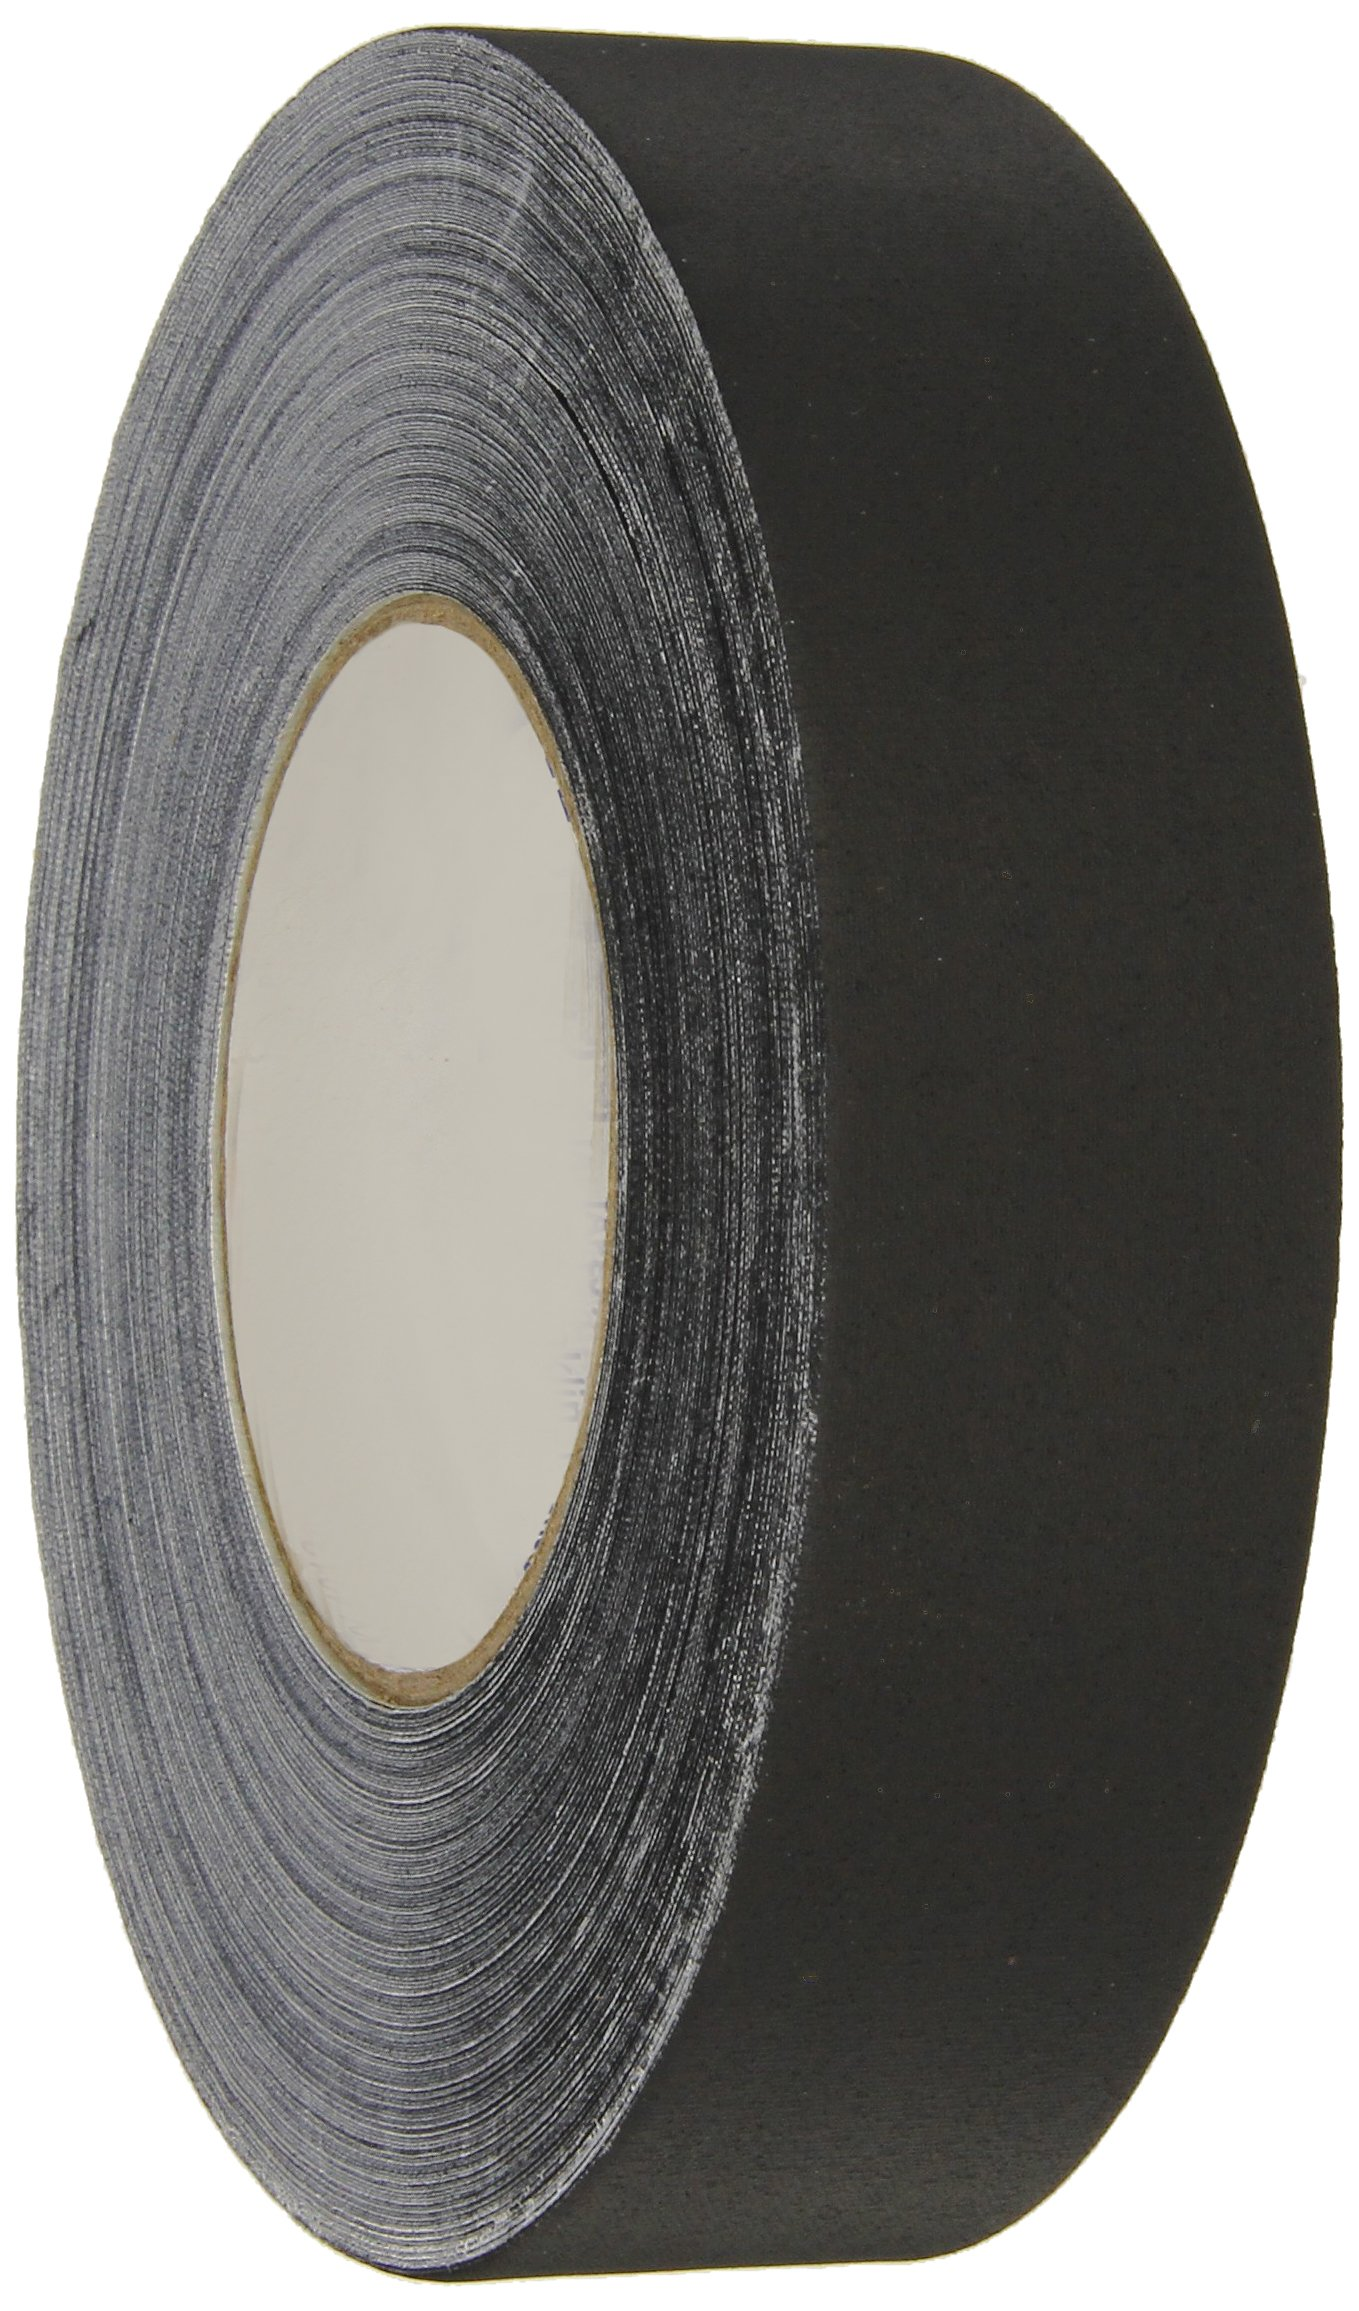 Polyken 510 Vinyl Coated Cloth Premium Gaffer's Tape, 11.5 mil Thick, 55 yds Length, 1-1/2 Width, Black